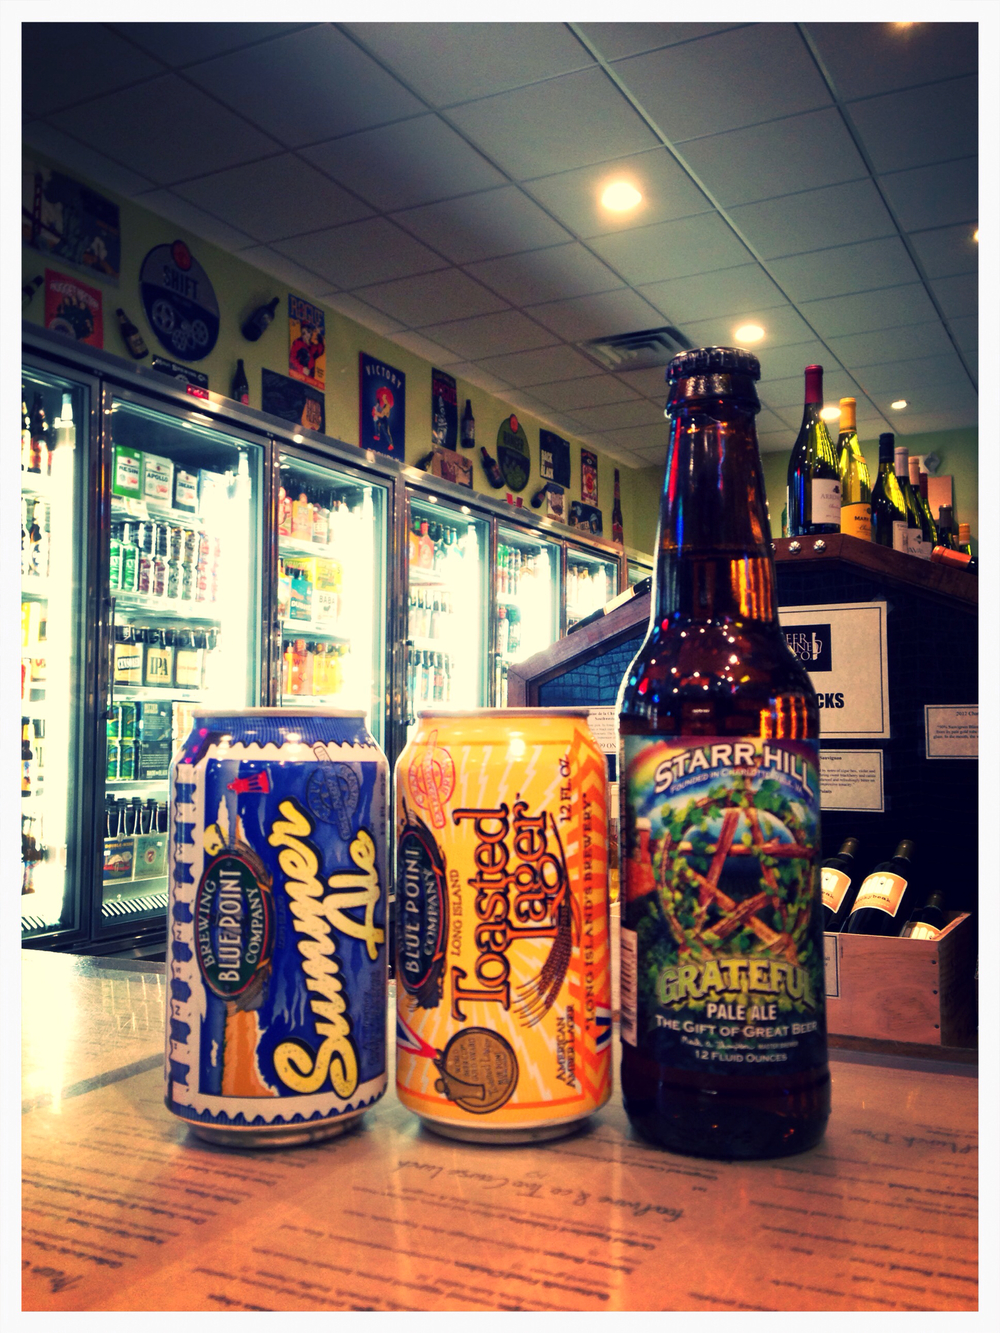 Bluepoint Summer Ale & Toasted Lager cans, Starr Hill Grateful Pale Ale